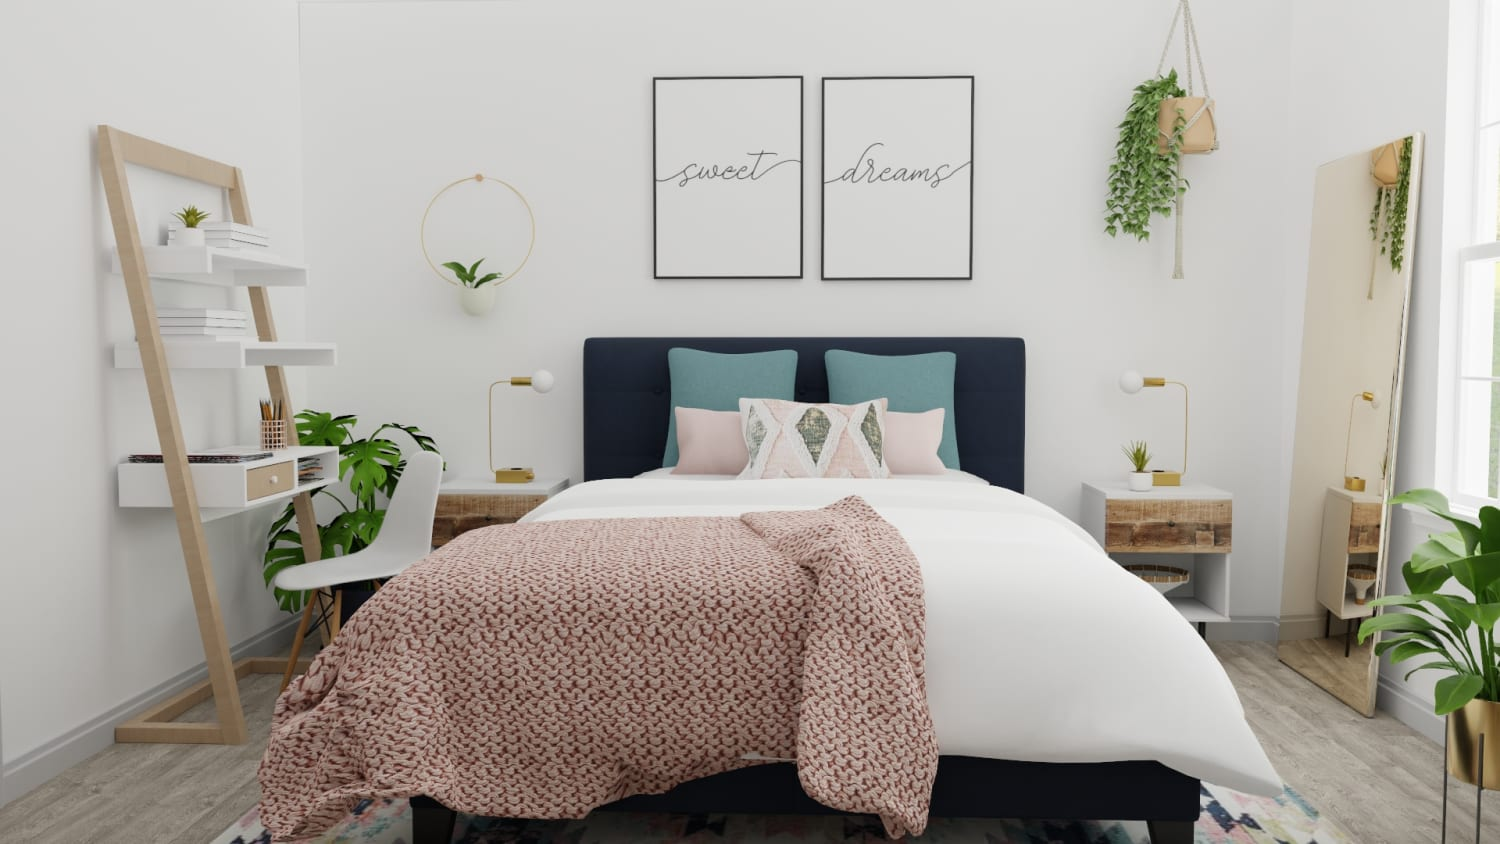 Inspiring Blush And Teal Modern Boho Bedroom Design By Spacejoy